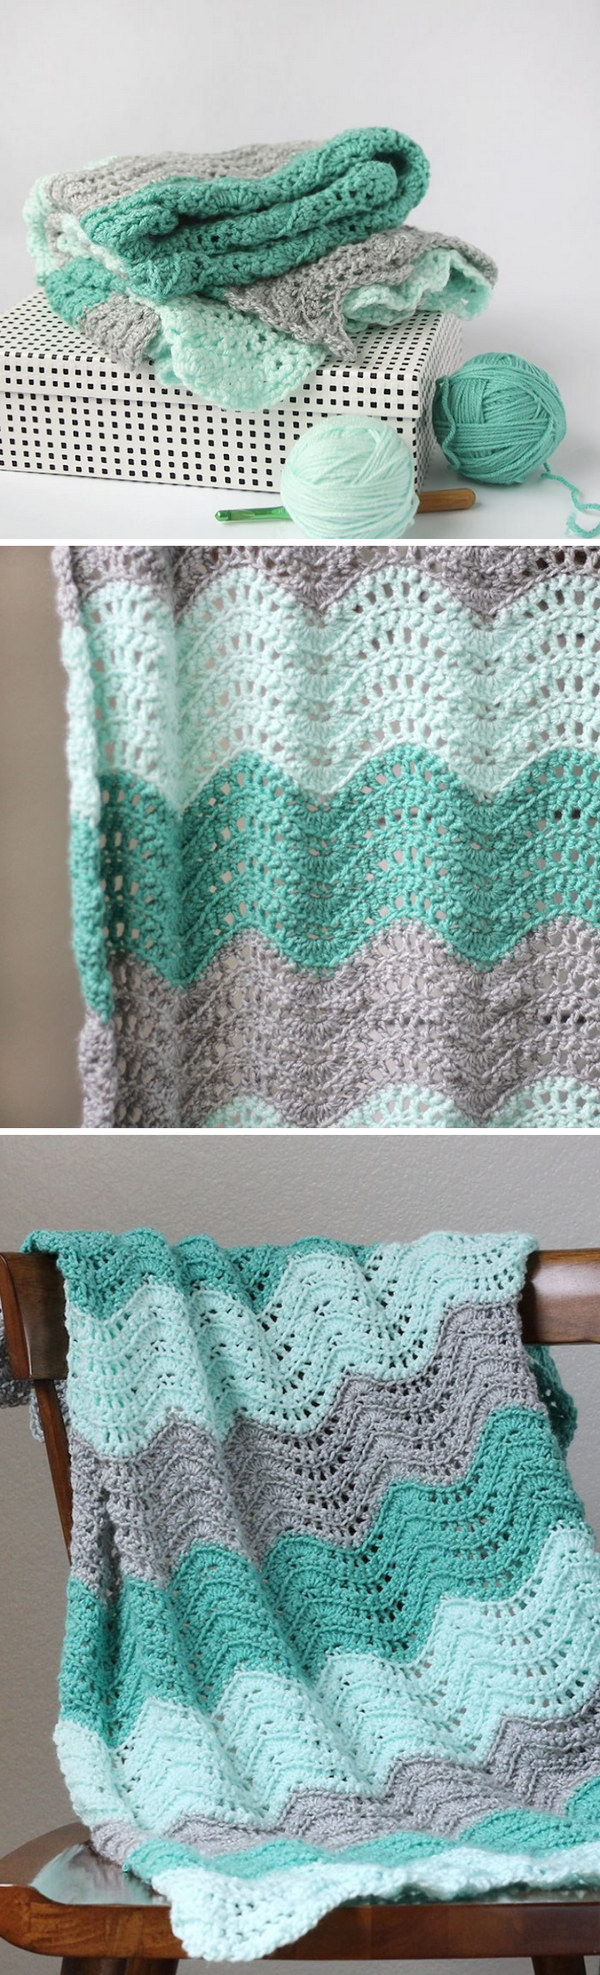 Crochet Baby Blanket Patterns Easy Free : 20+ Free Crochet Blanket Patterns with Lots of Tutorials ...